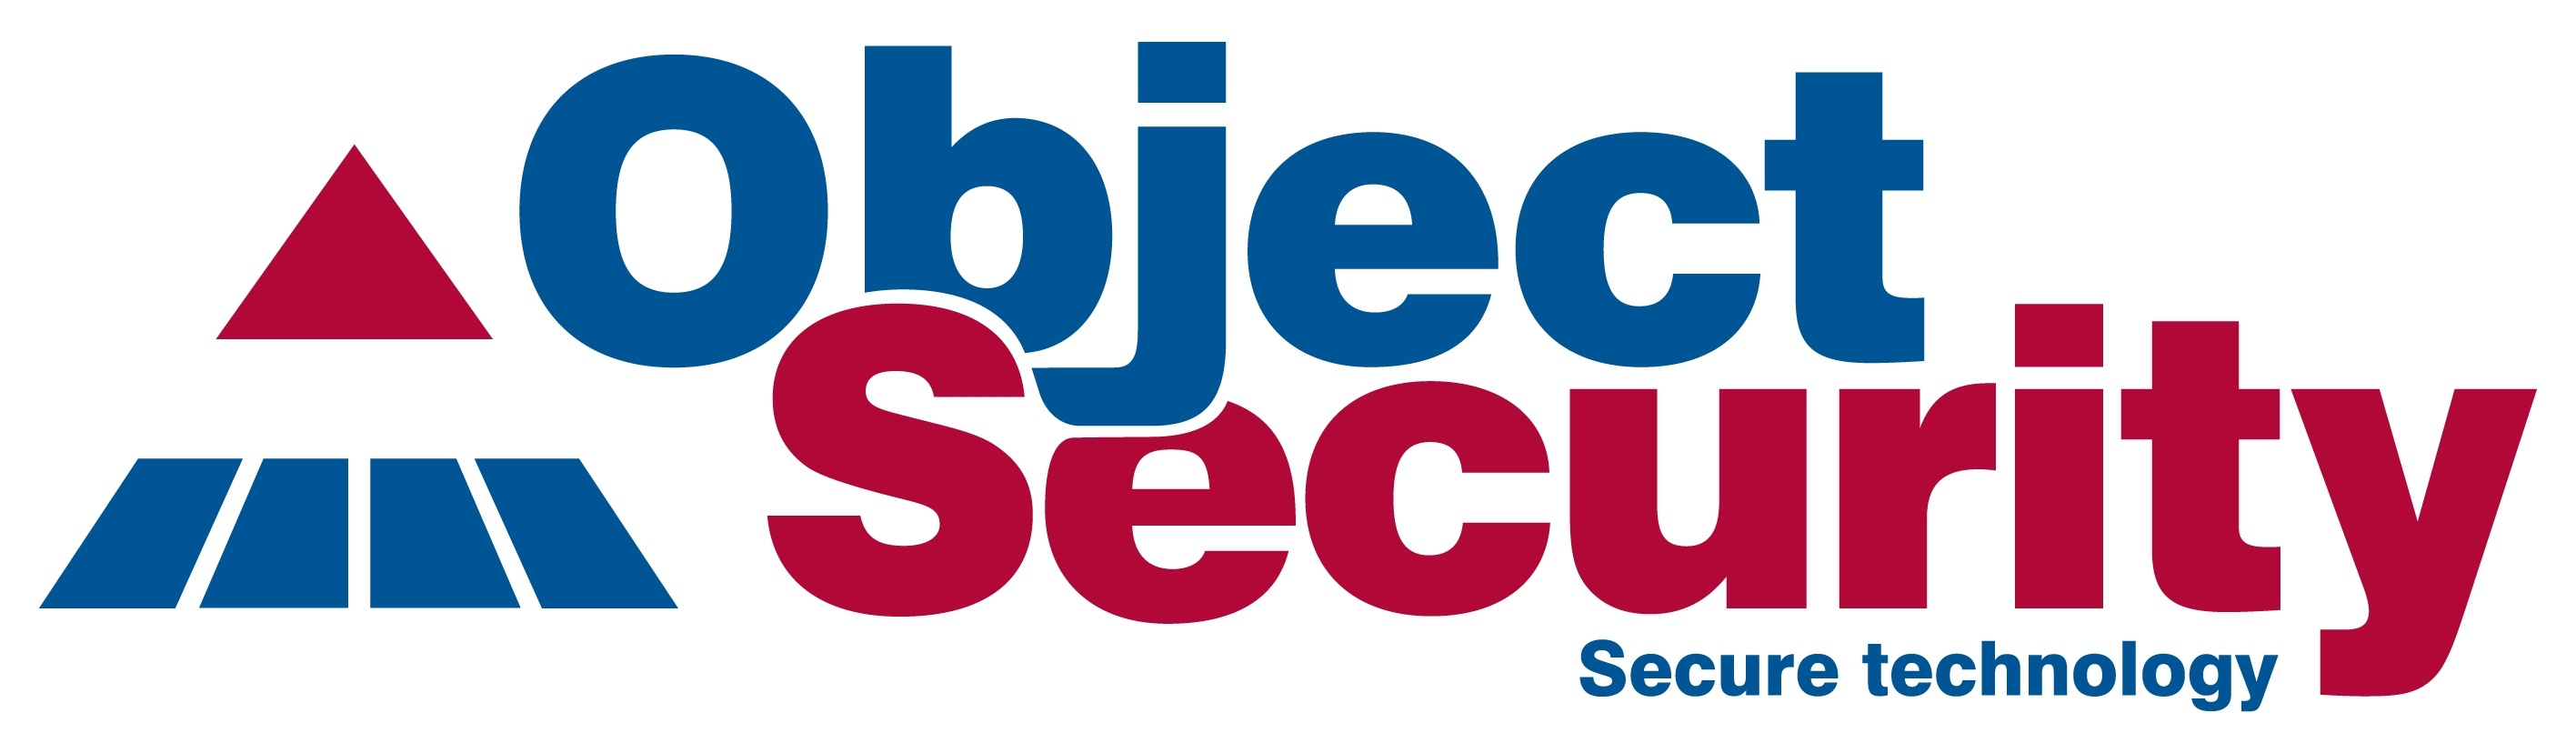 Object Security Logo_LARGE.jpg